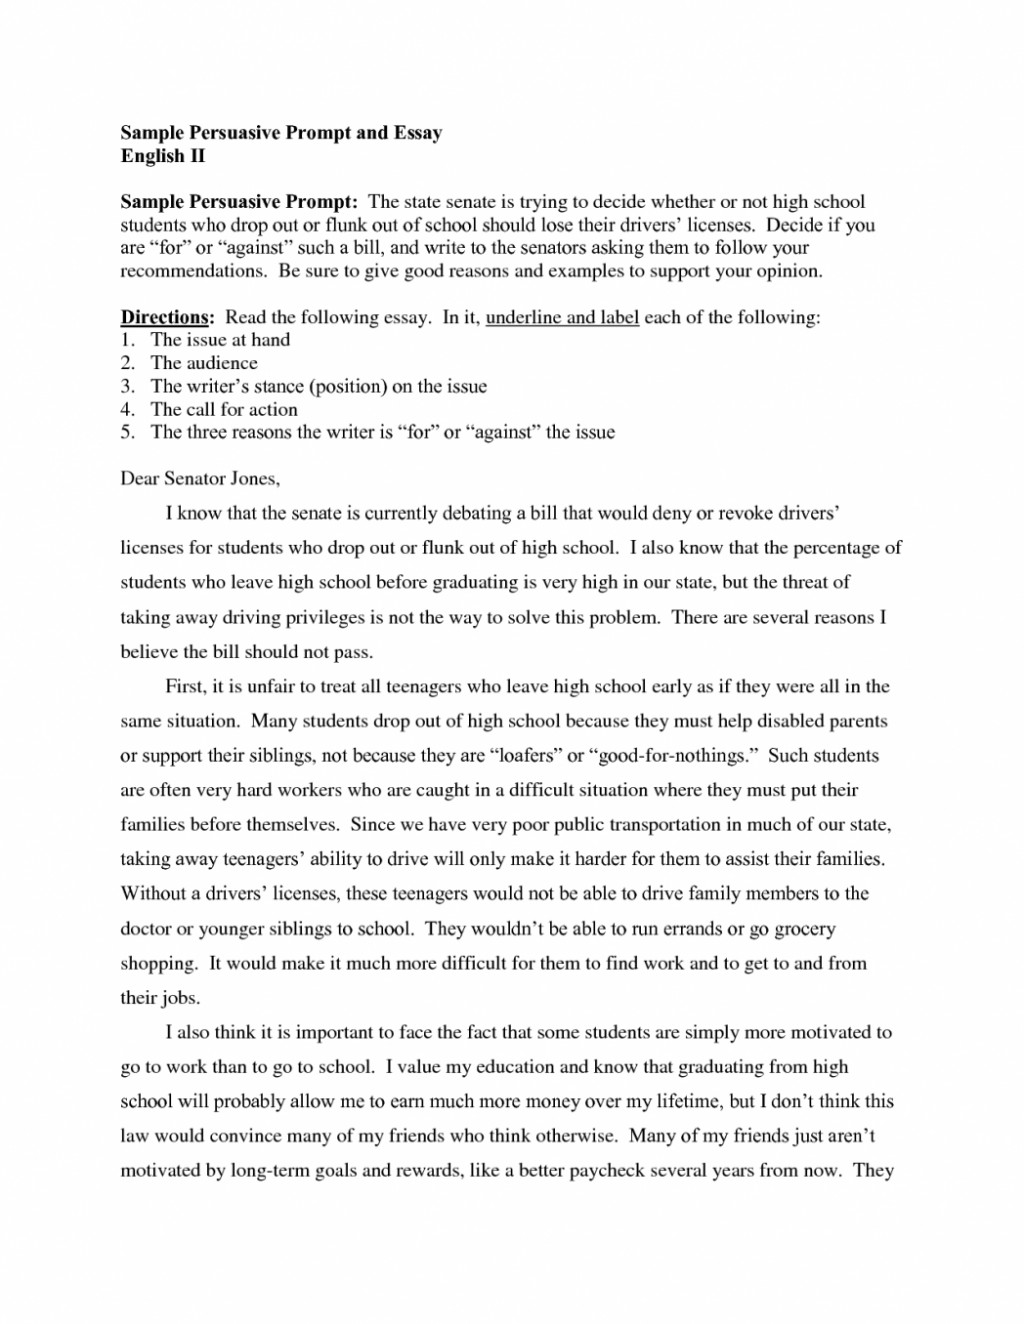 007 Essay Example How To Write Outstanding A Persuasive Argument Conclusion For College Introduction Large